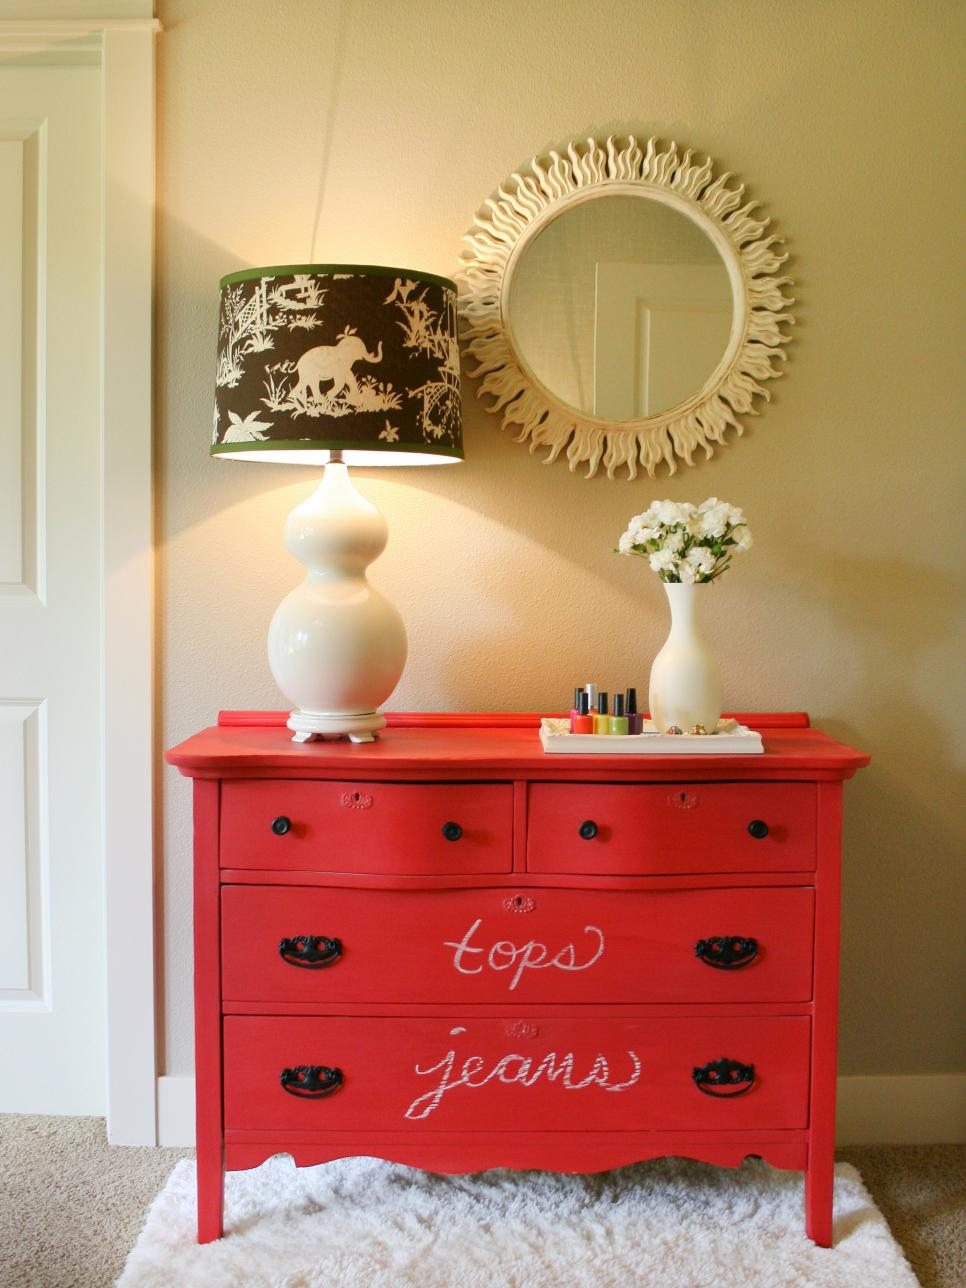 12 New Uses for Old Furniture | HGTV